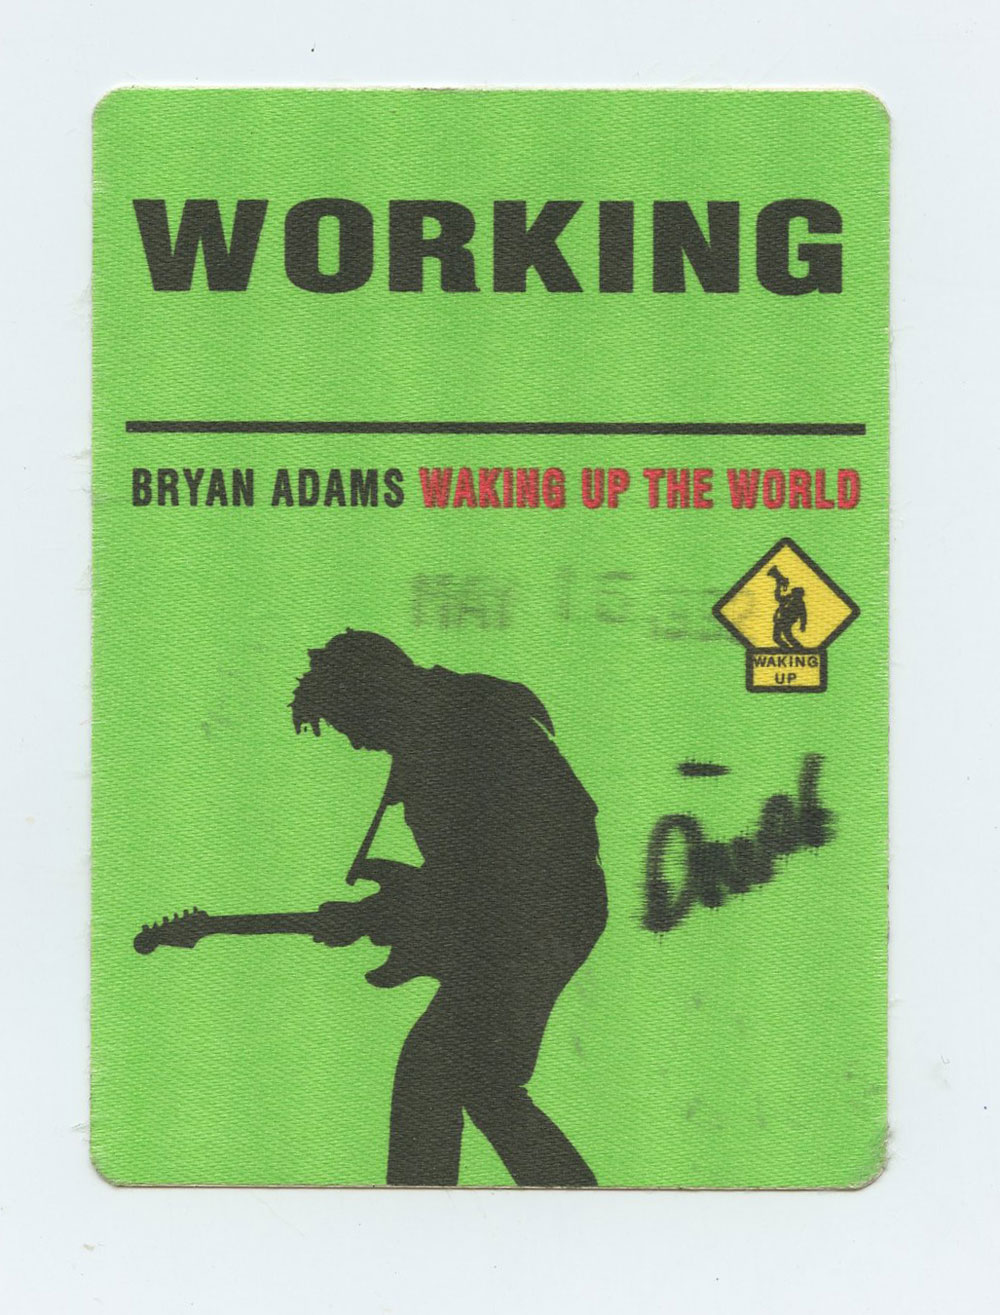 Bryan Adams Backstage Pass 1992 Waking Up The World Tour